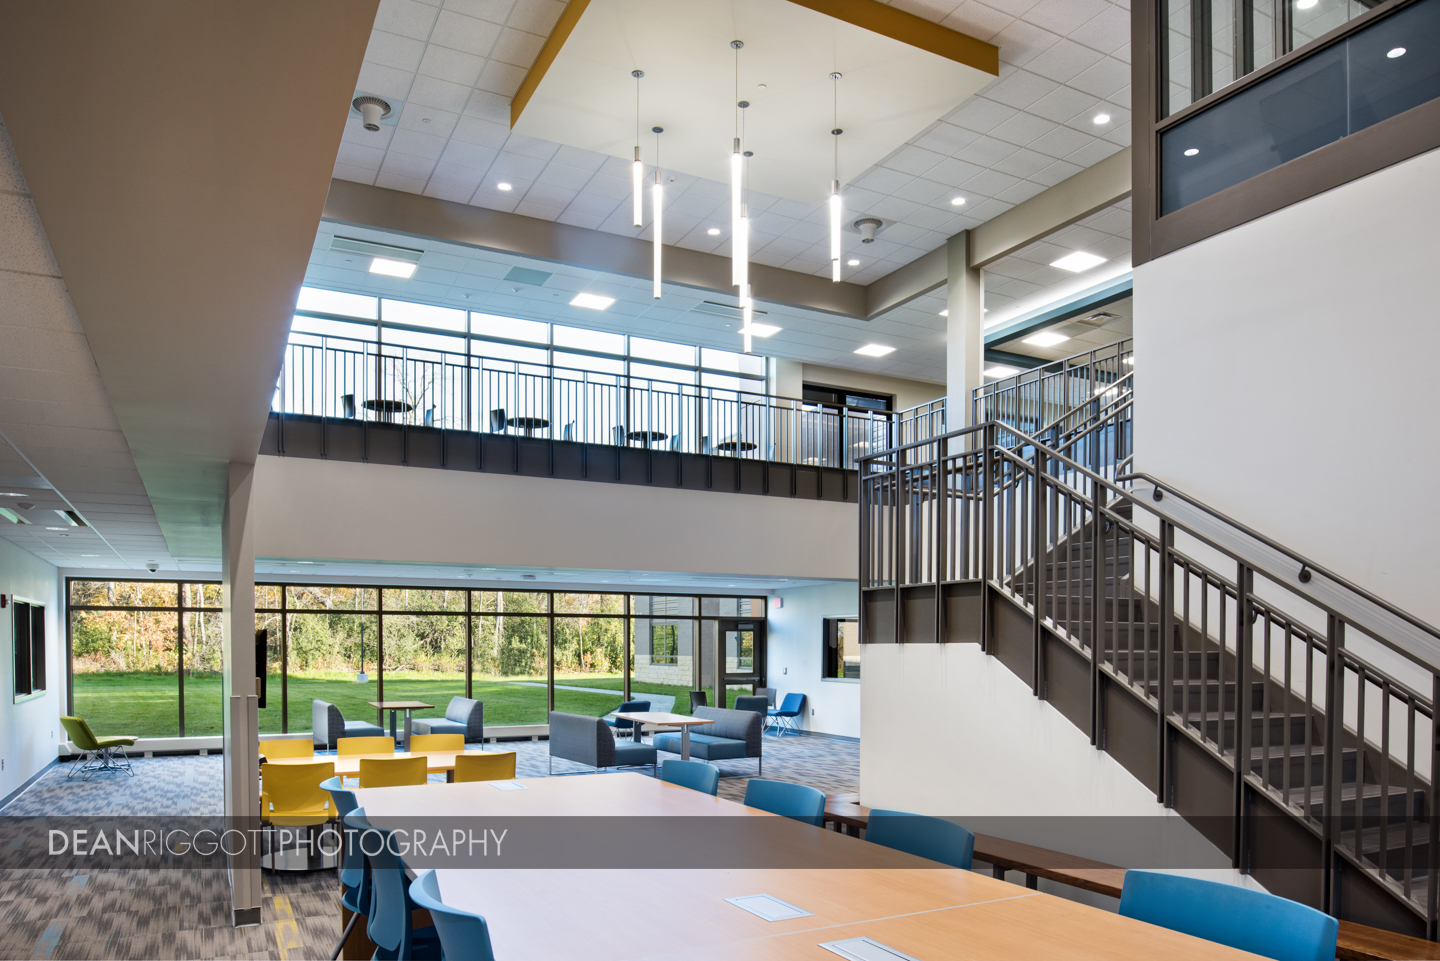 Highlights of Prairie Winds Middle School in Mankato, Minnesota. What a beautiful school by ISG, Wold Architects and Knutson Construction! © Dean Riggott Photography http://www.riggottphoto.com